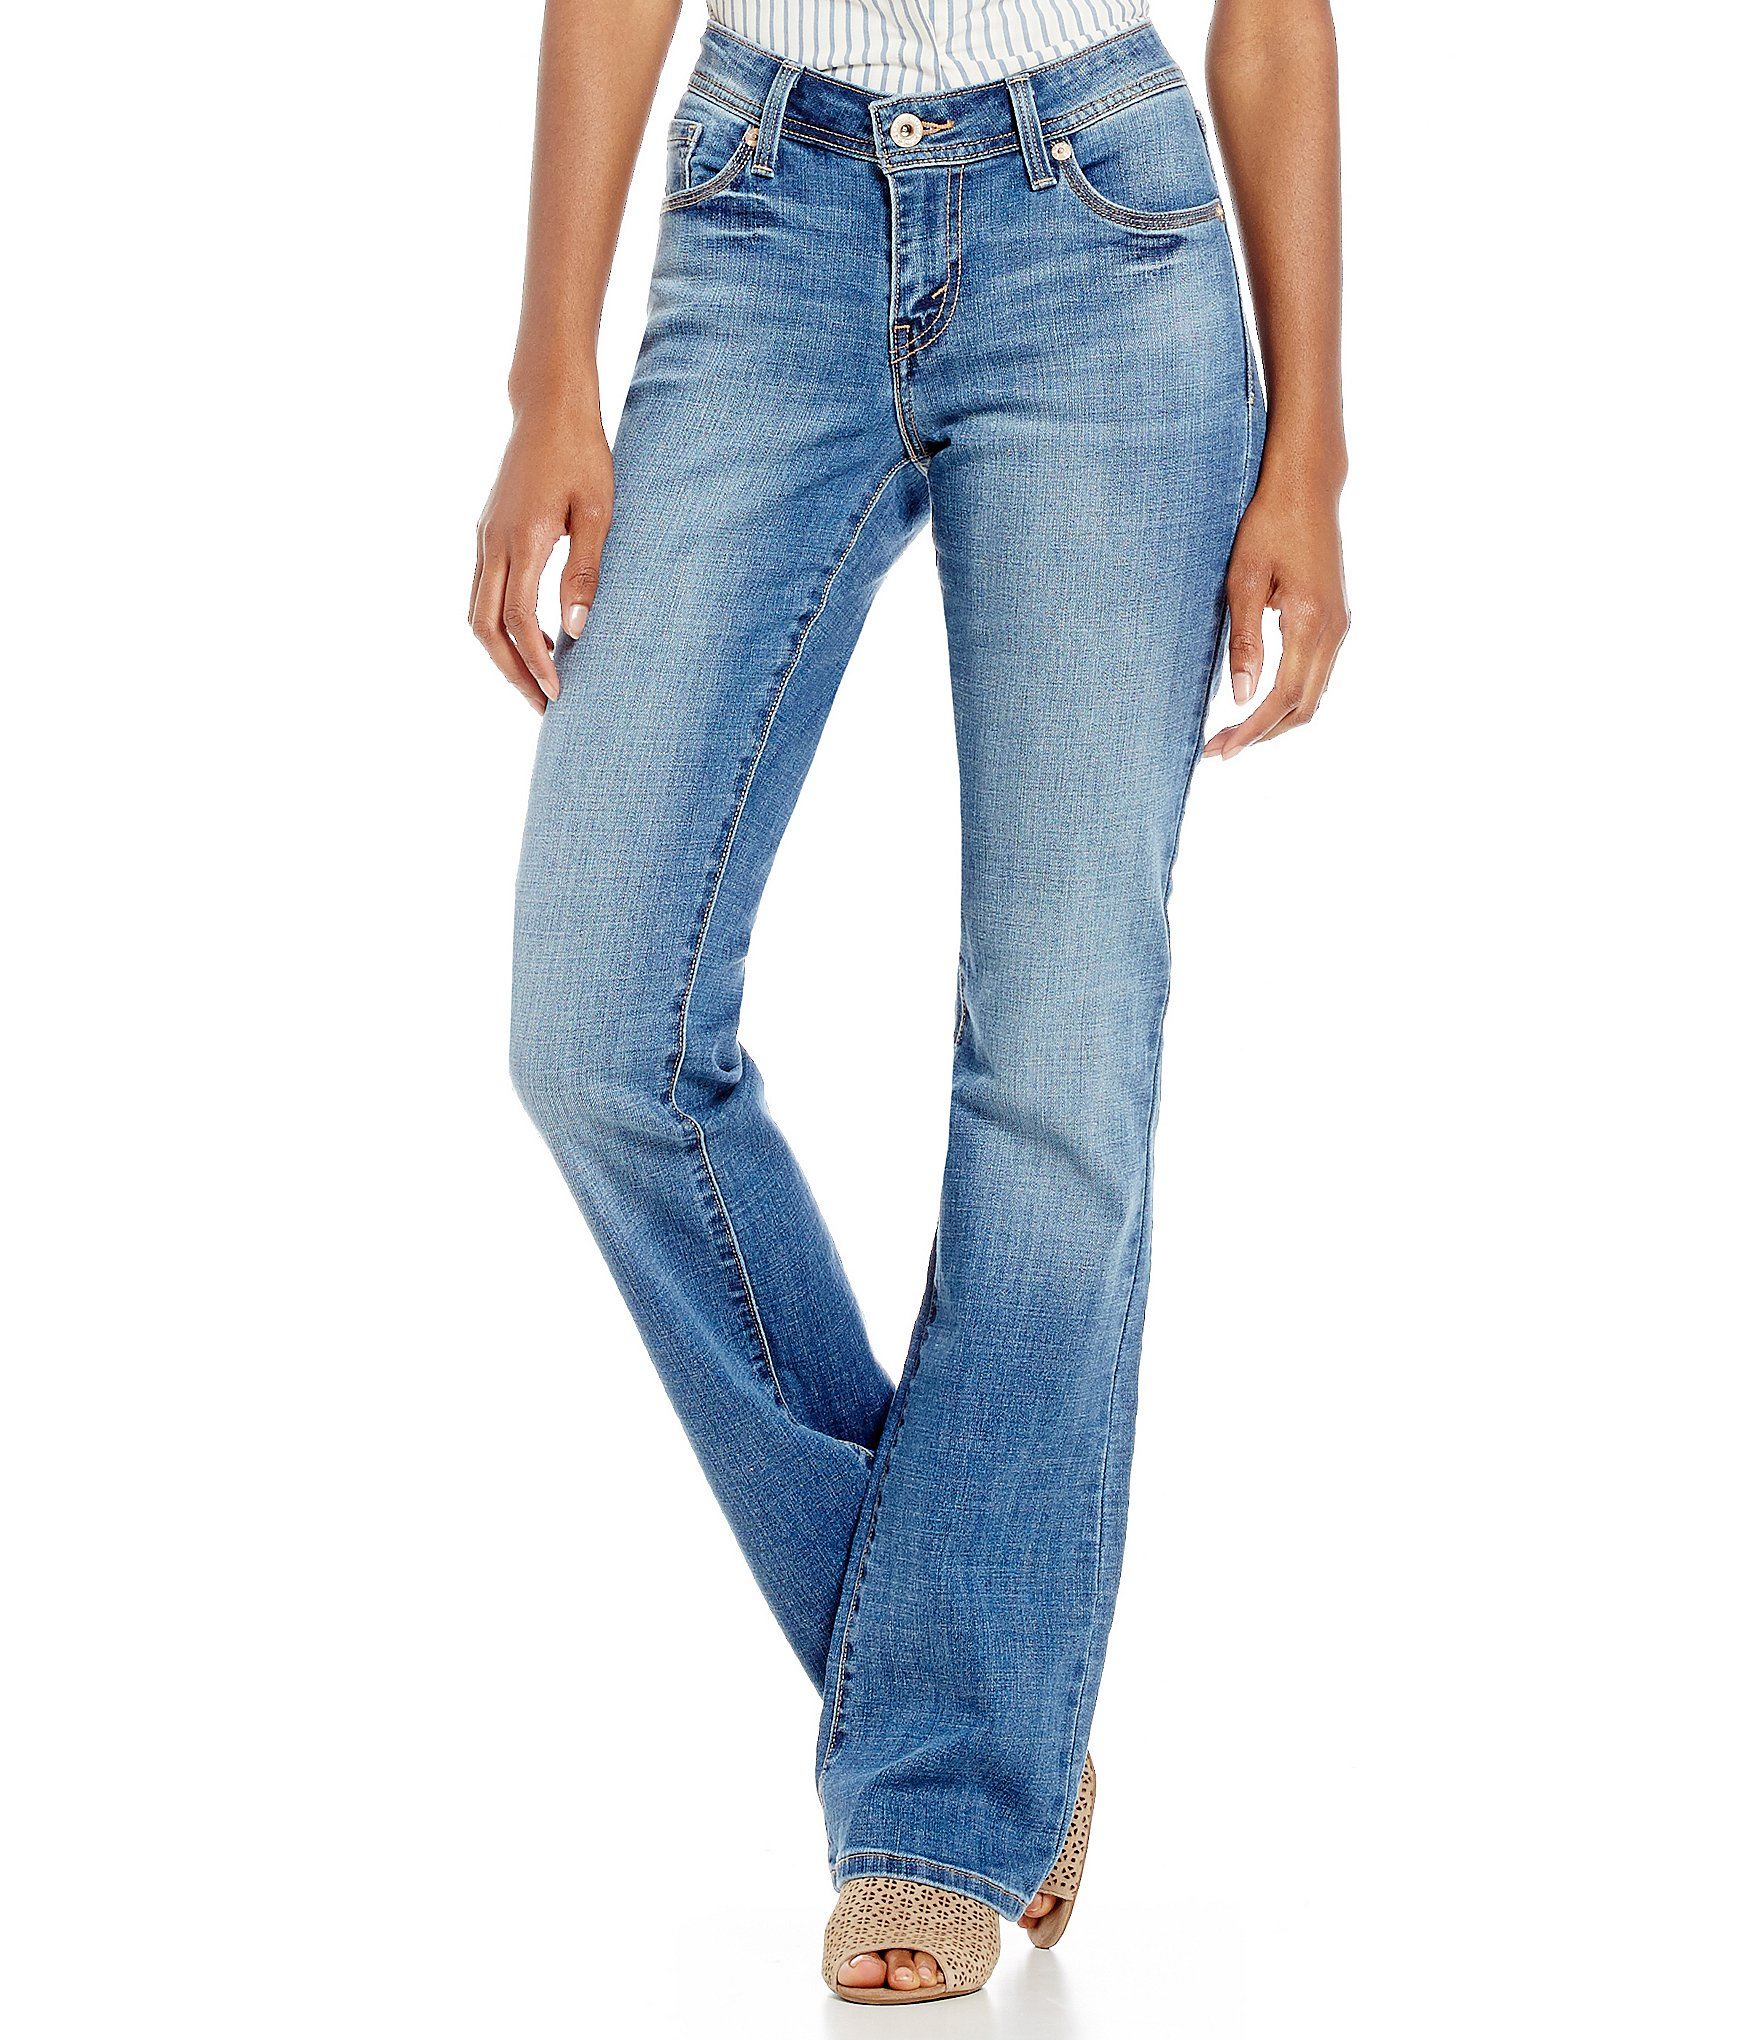 These Luscious Curvy Bootcut jeans feature a double button closure, and Levi's Women's Classic Bootcut Jeans. by Levi's. $ - $ $ 35 $ 46 79 Prime. FREE Shipping on eligible orders. Some sizes/colors are Prime eligible. 4 out of 5 stars Suki Curvy Fit Mid Rise Slim Bootcut Jeans.